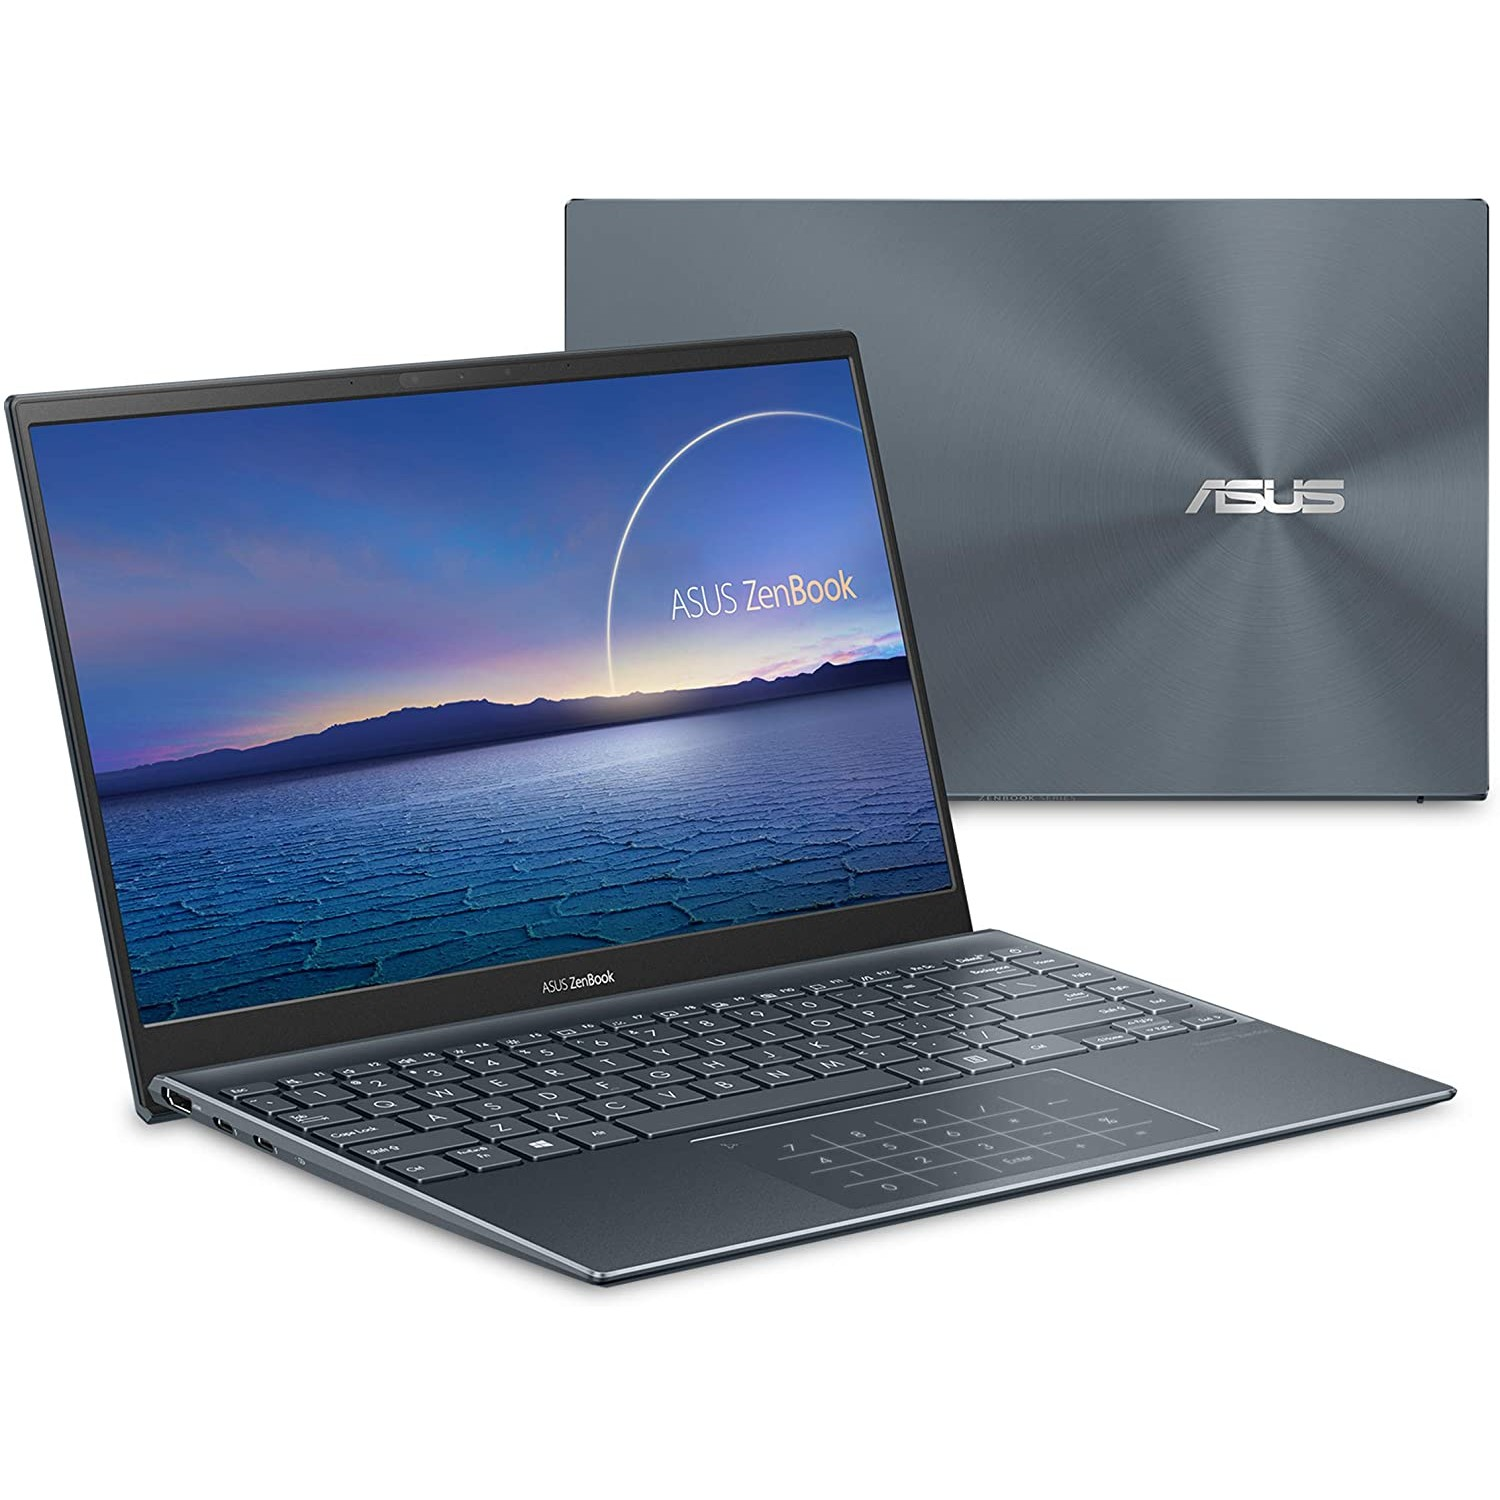 Best Laptop For Internet And Skype